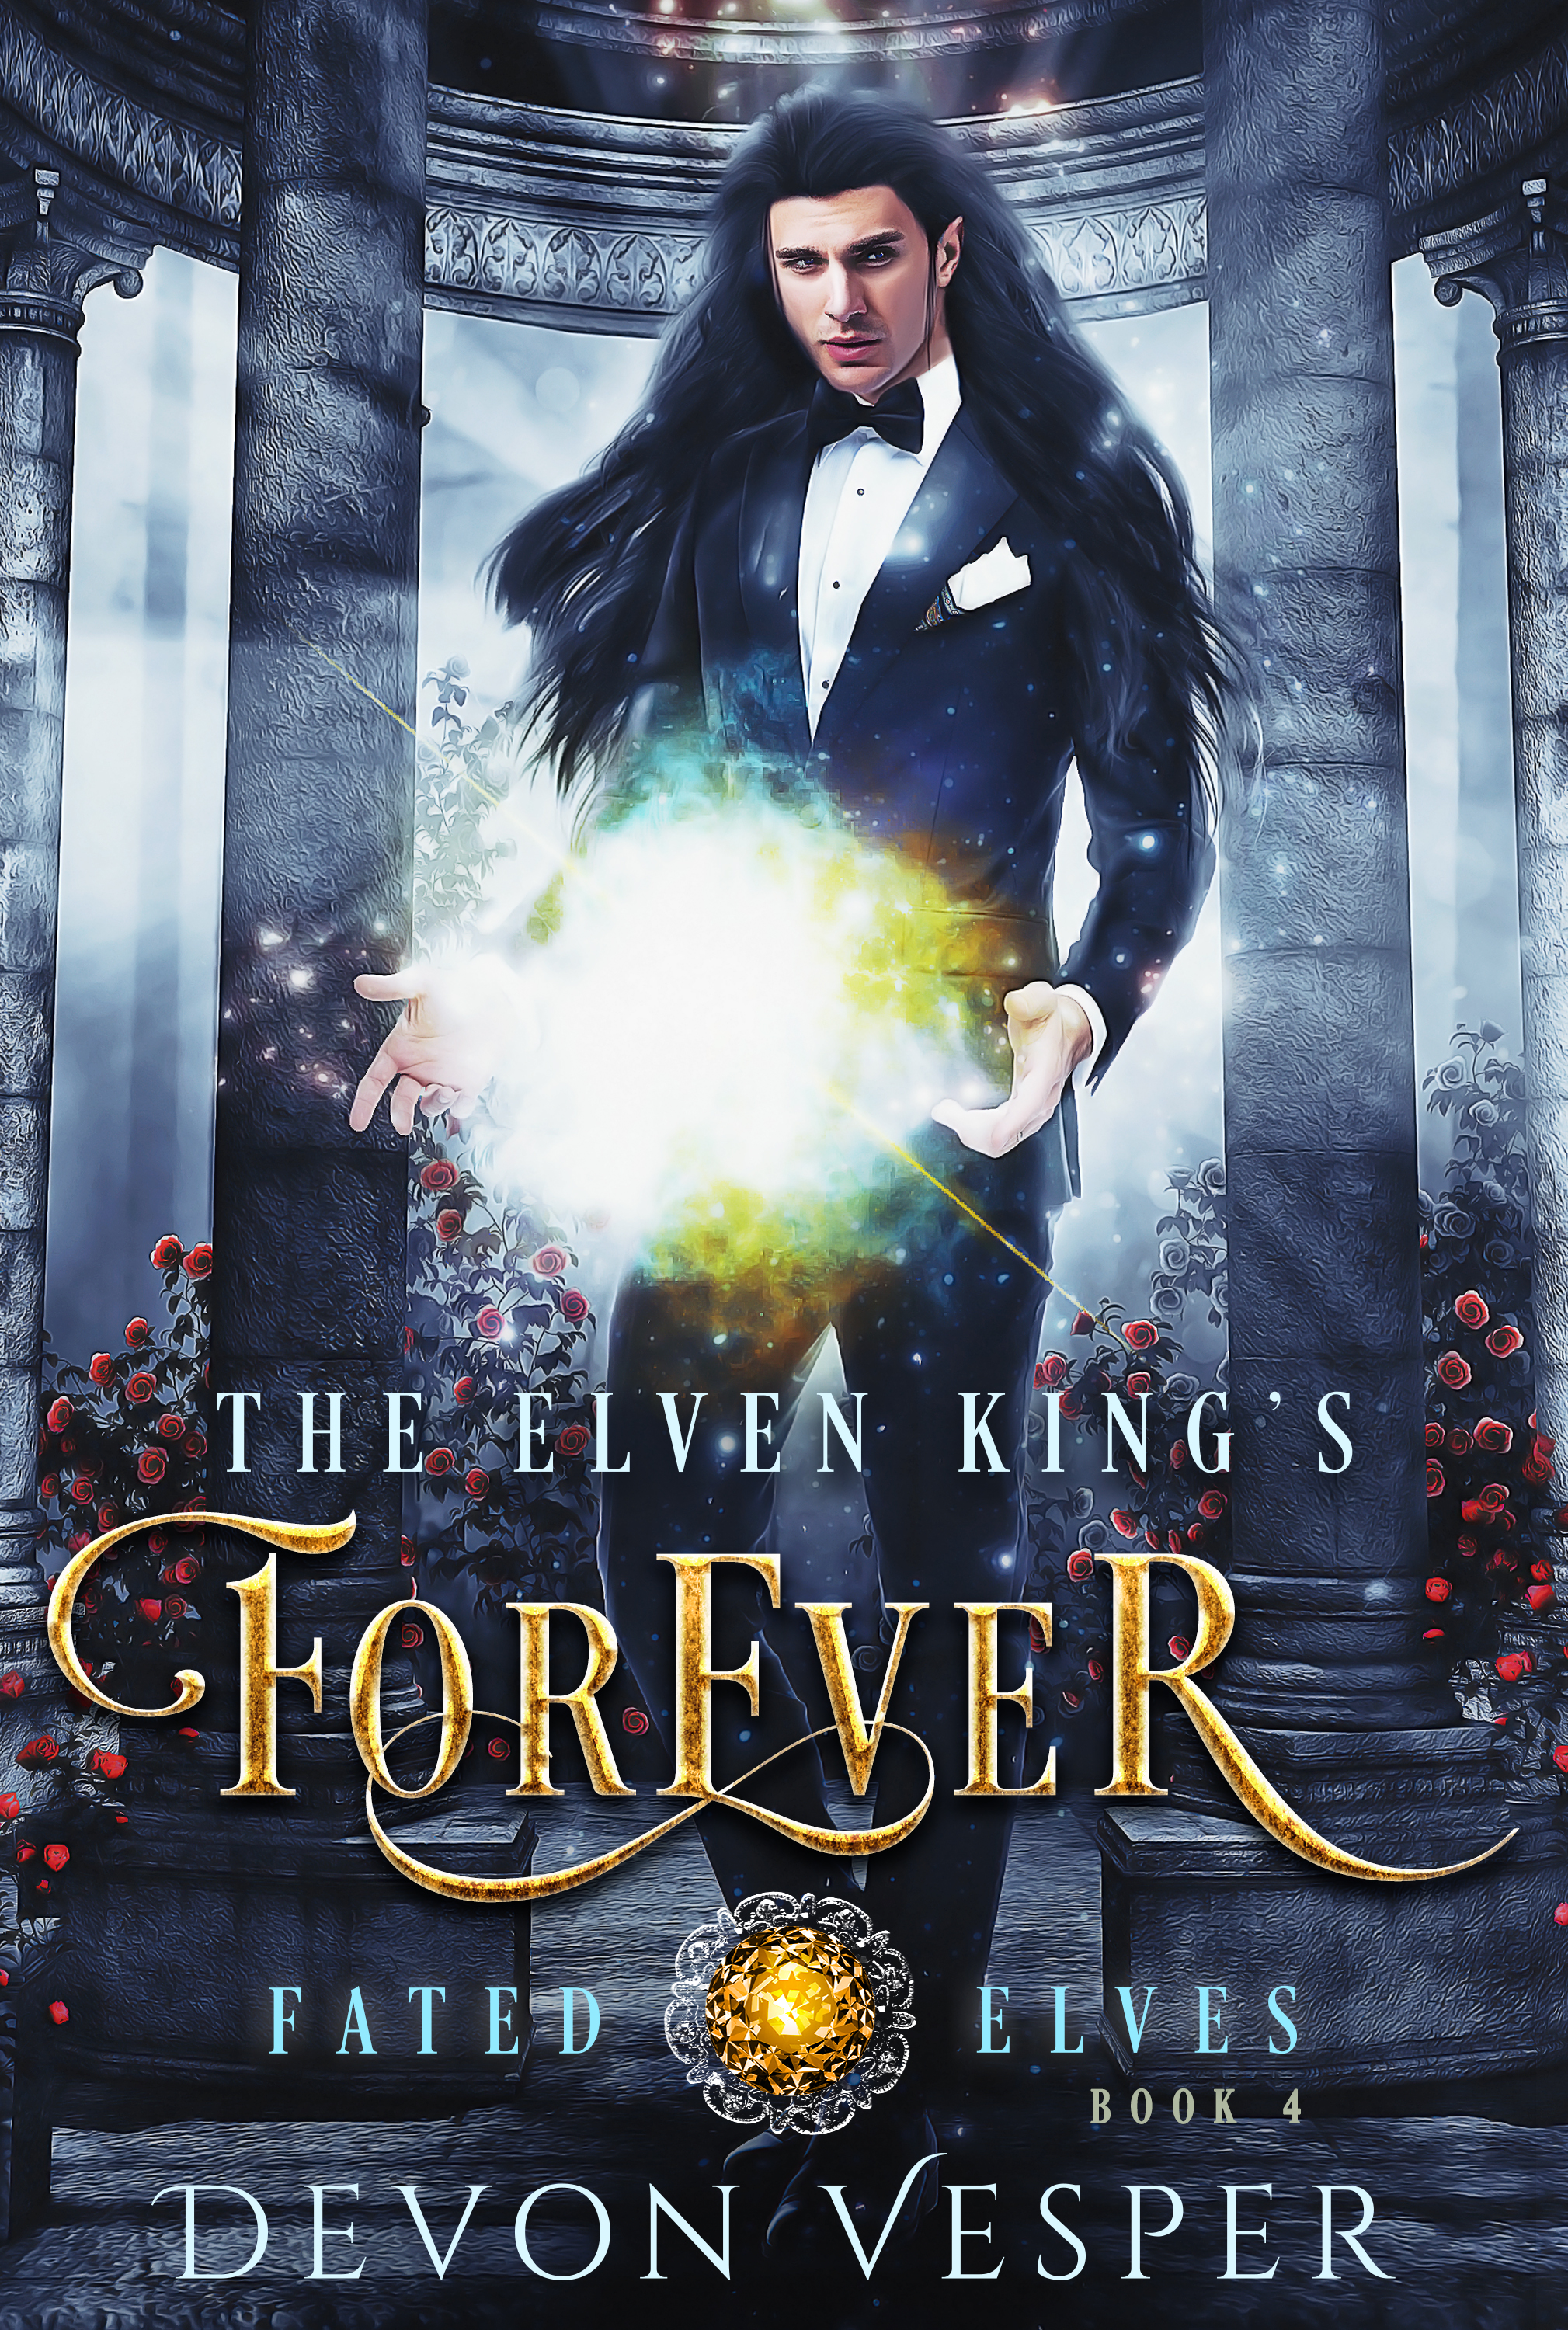 The Elven King's Forever ebook (1)